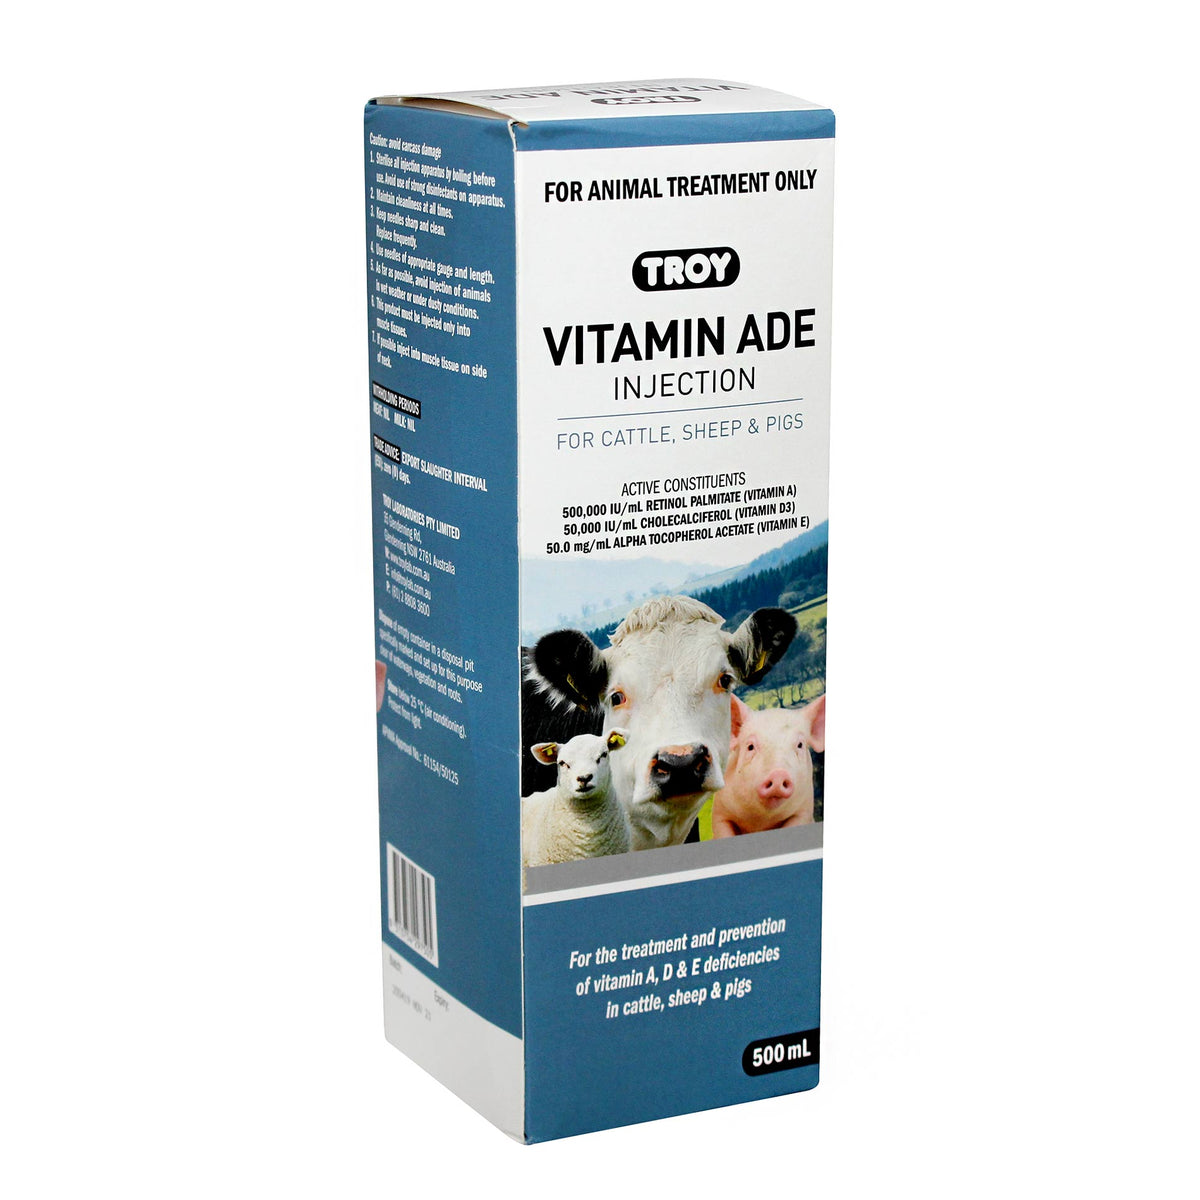 Troy Vitamin ADE Injection for Cattle, Sheep & Pigs